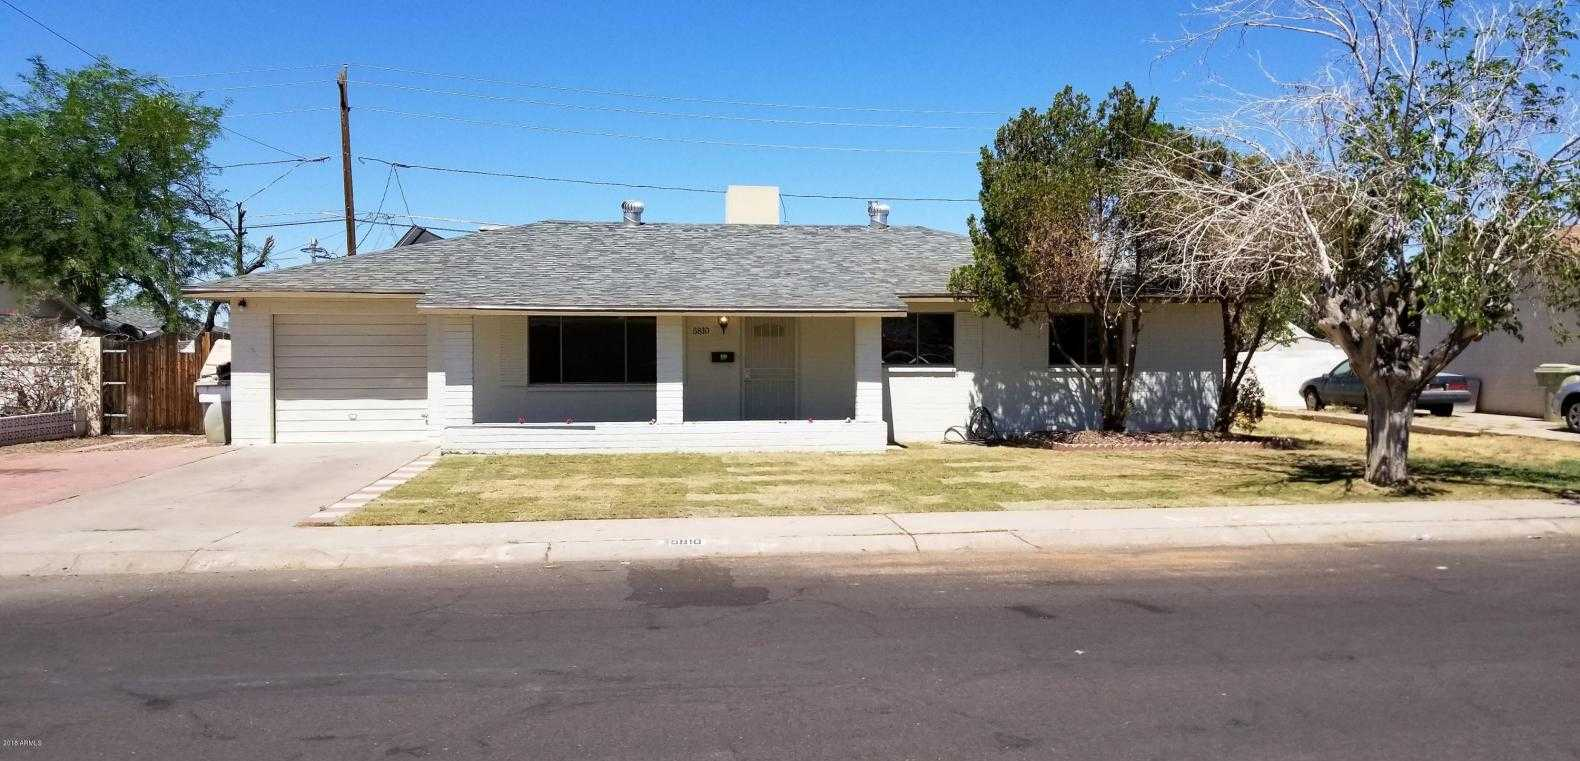 $214,900 - 4Br/2Ba - Home for Sale in Maryvale Terrace 20-a Lts 7490-7494, Glendale